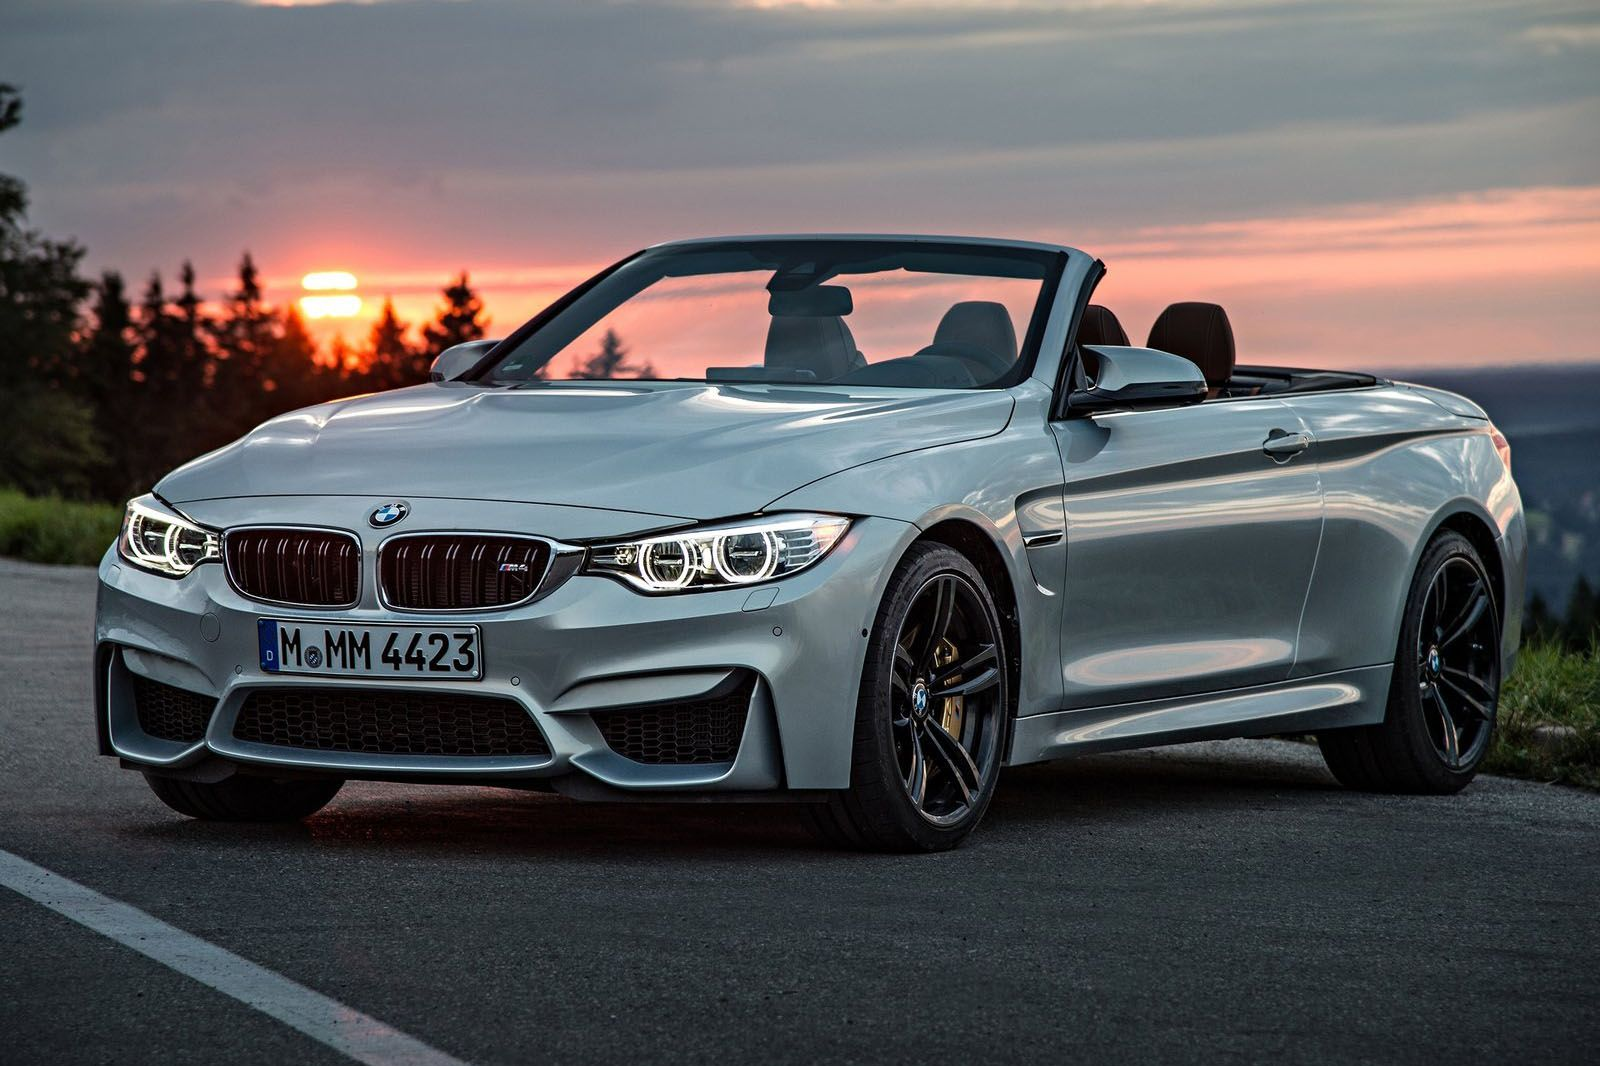 Bmw M4 Convertible 2015 Car Wallpapers Bmw M4 Bmw Convertible Bmw M4 Cabrio